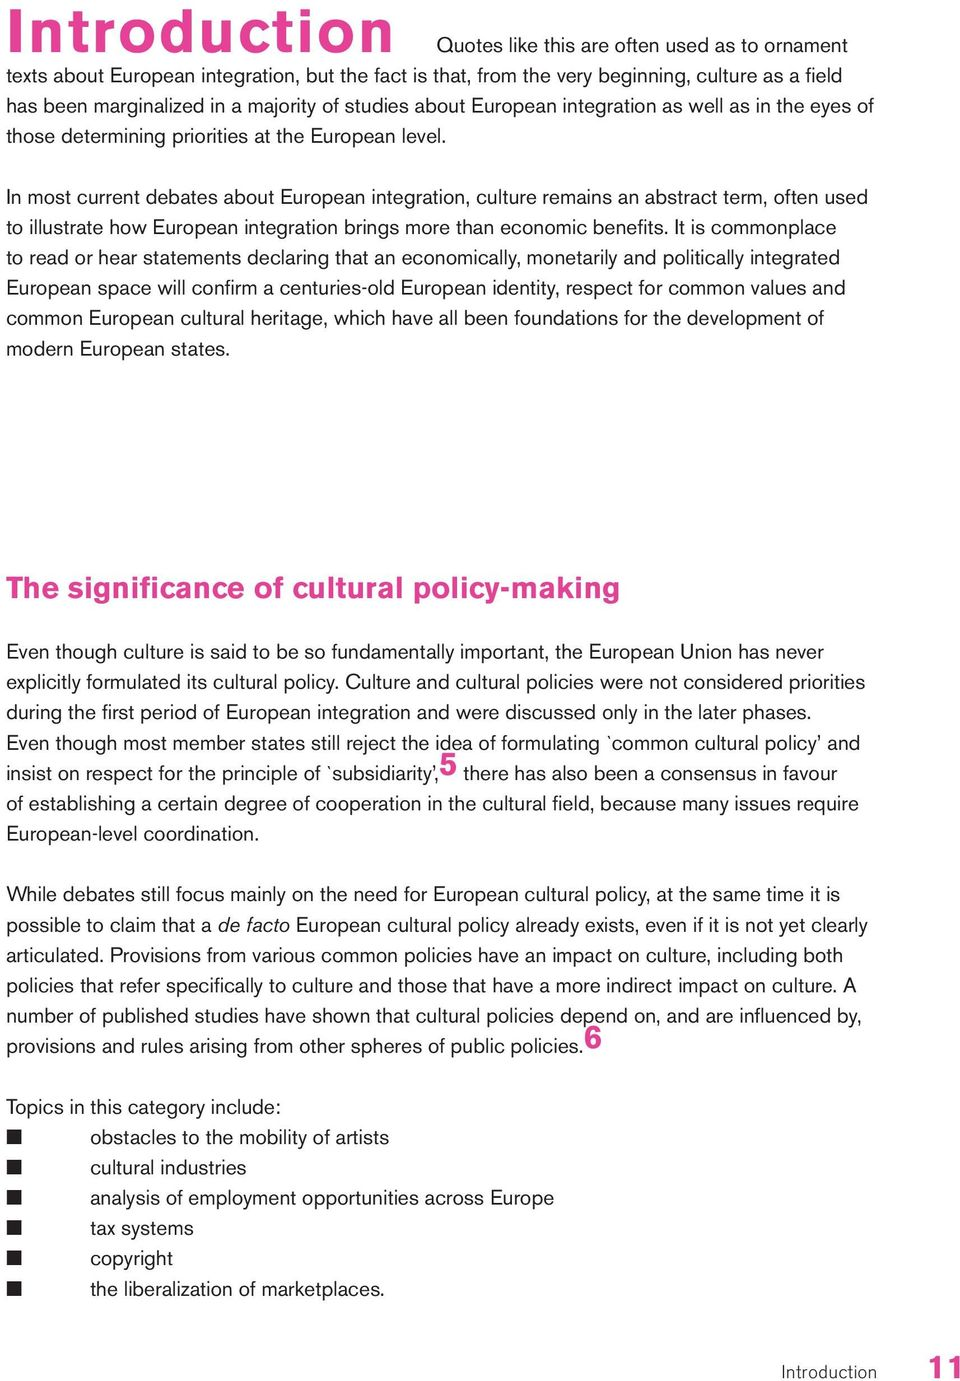 In most current debates about European integration, culture remains an abstract term, often used to illustrate how European integration brings more than economic benefits.